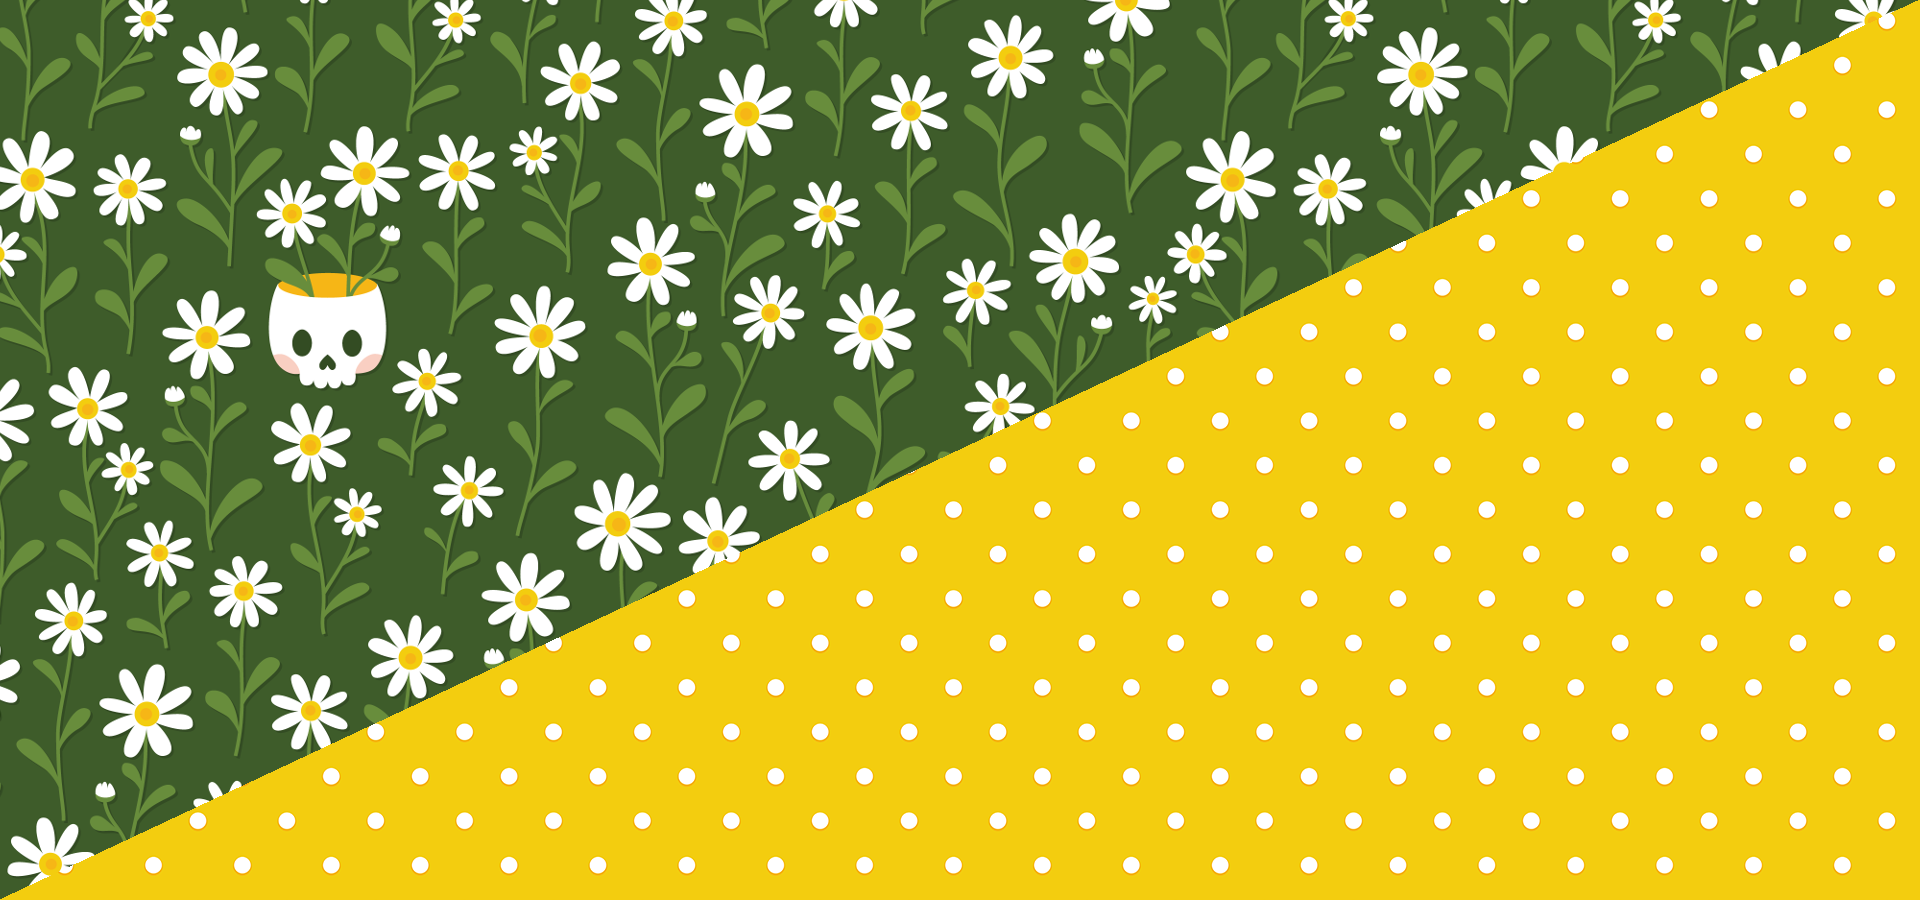 pushing daisies pattern collection